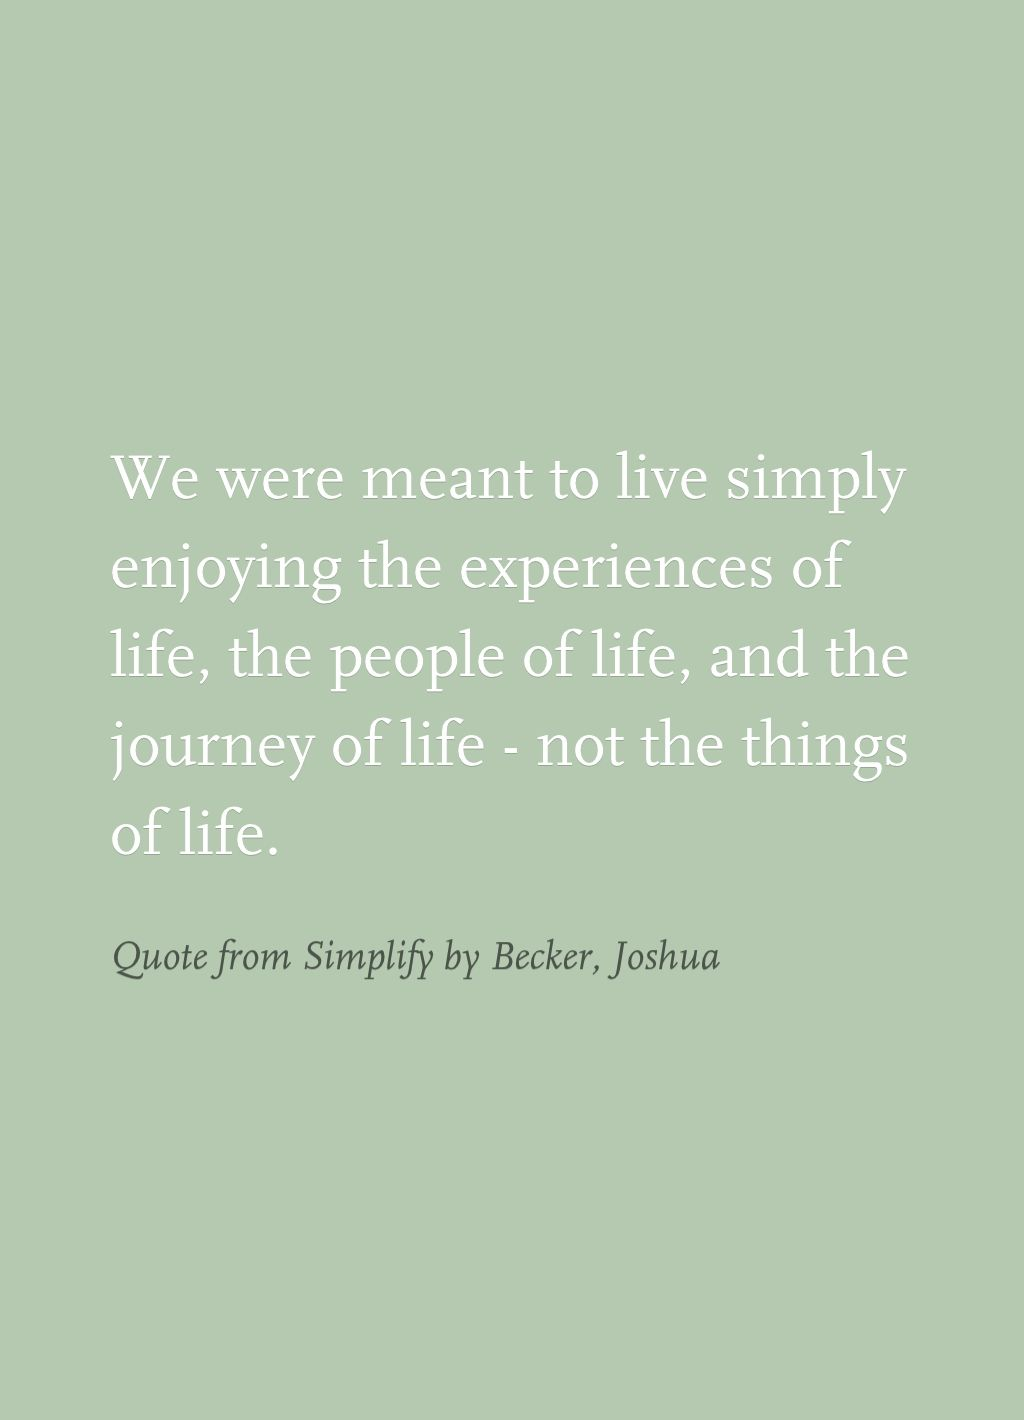 Superbe Quote From Simplify By Becker, Joshua